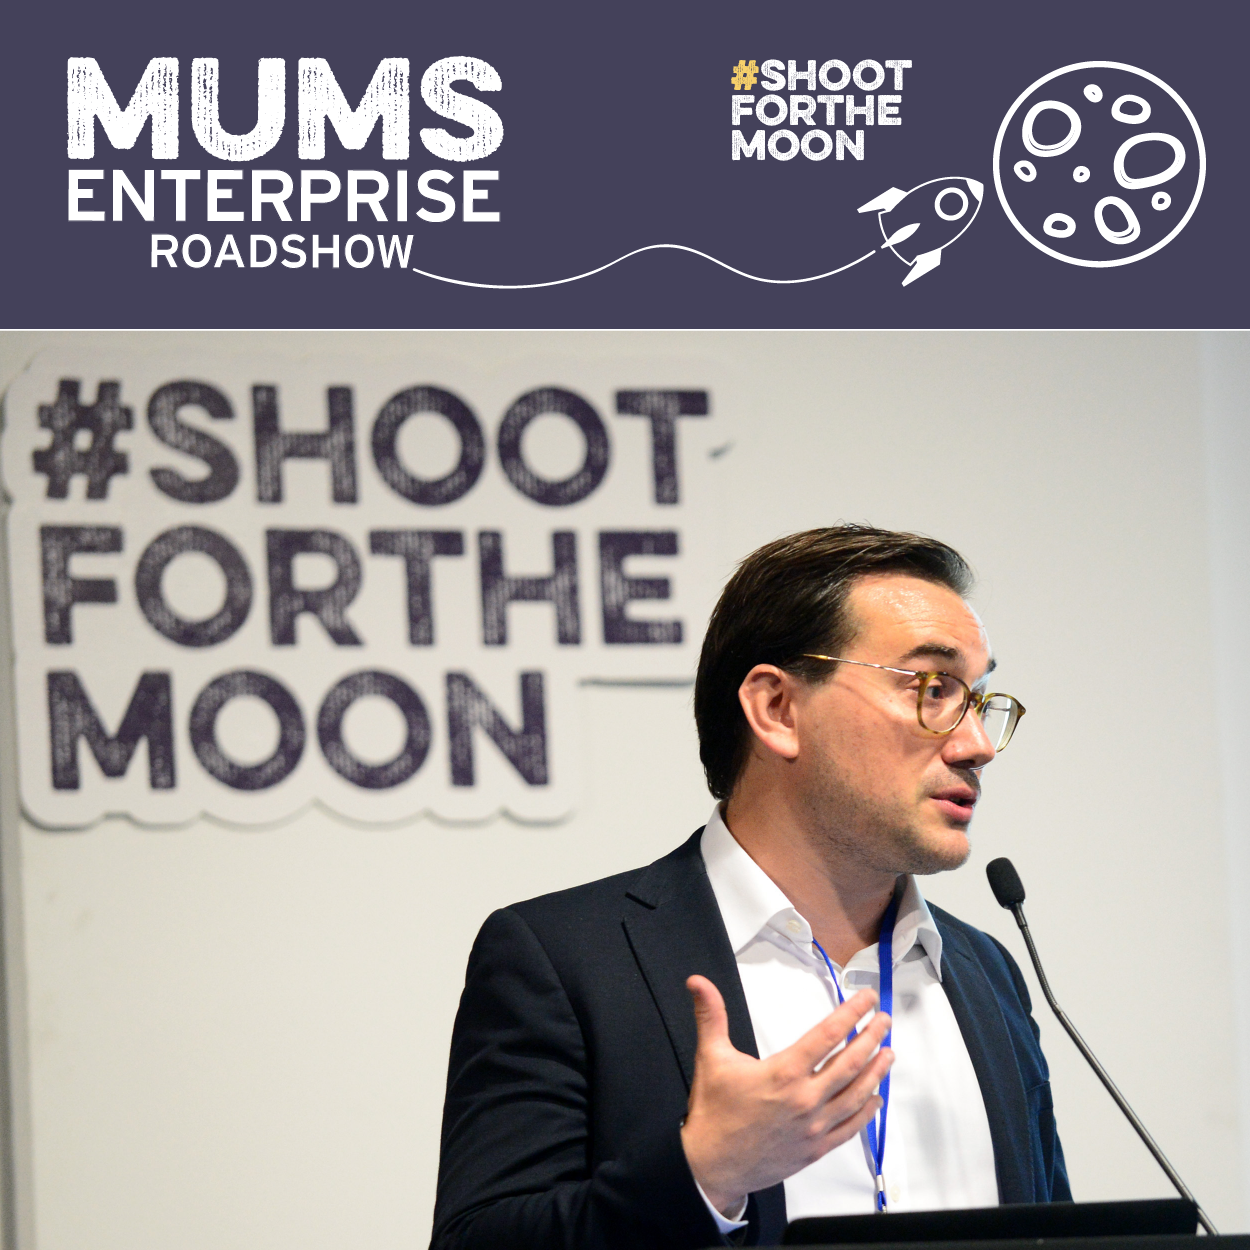 Mums Enterprise Roadshow. Dads encouraged to attend too!